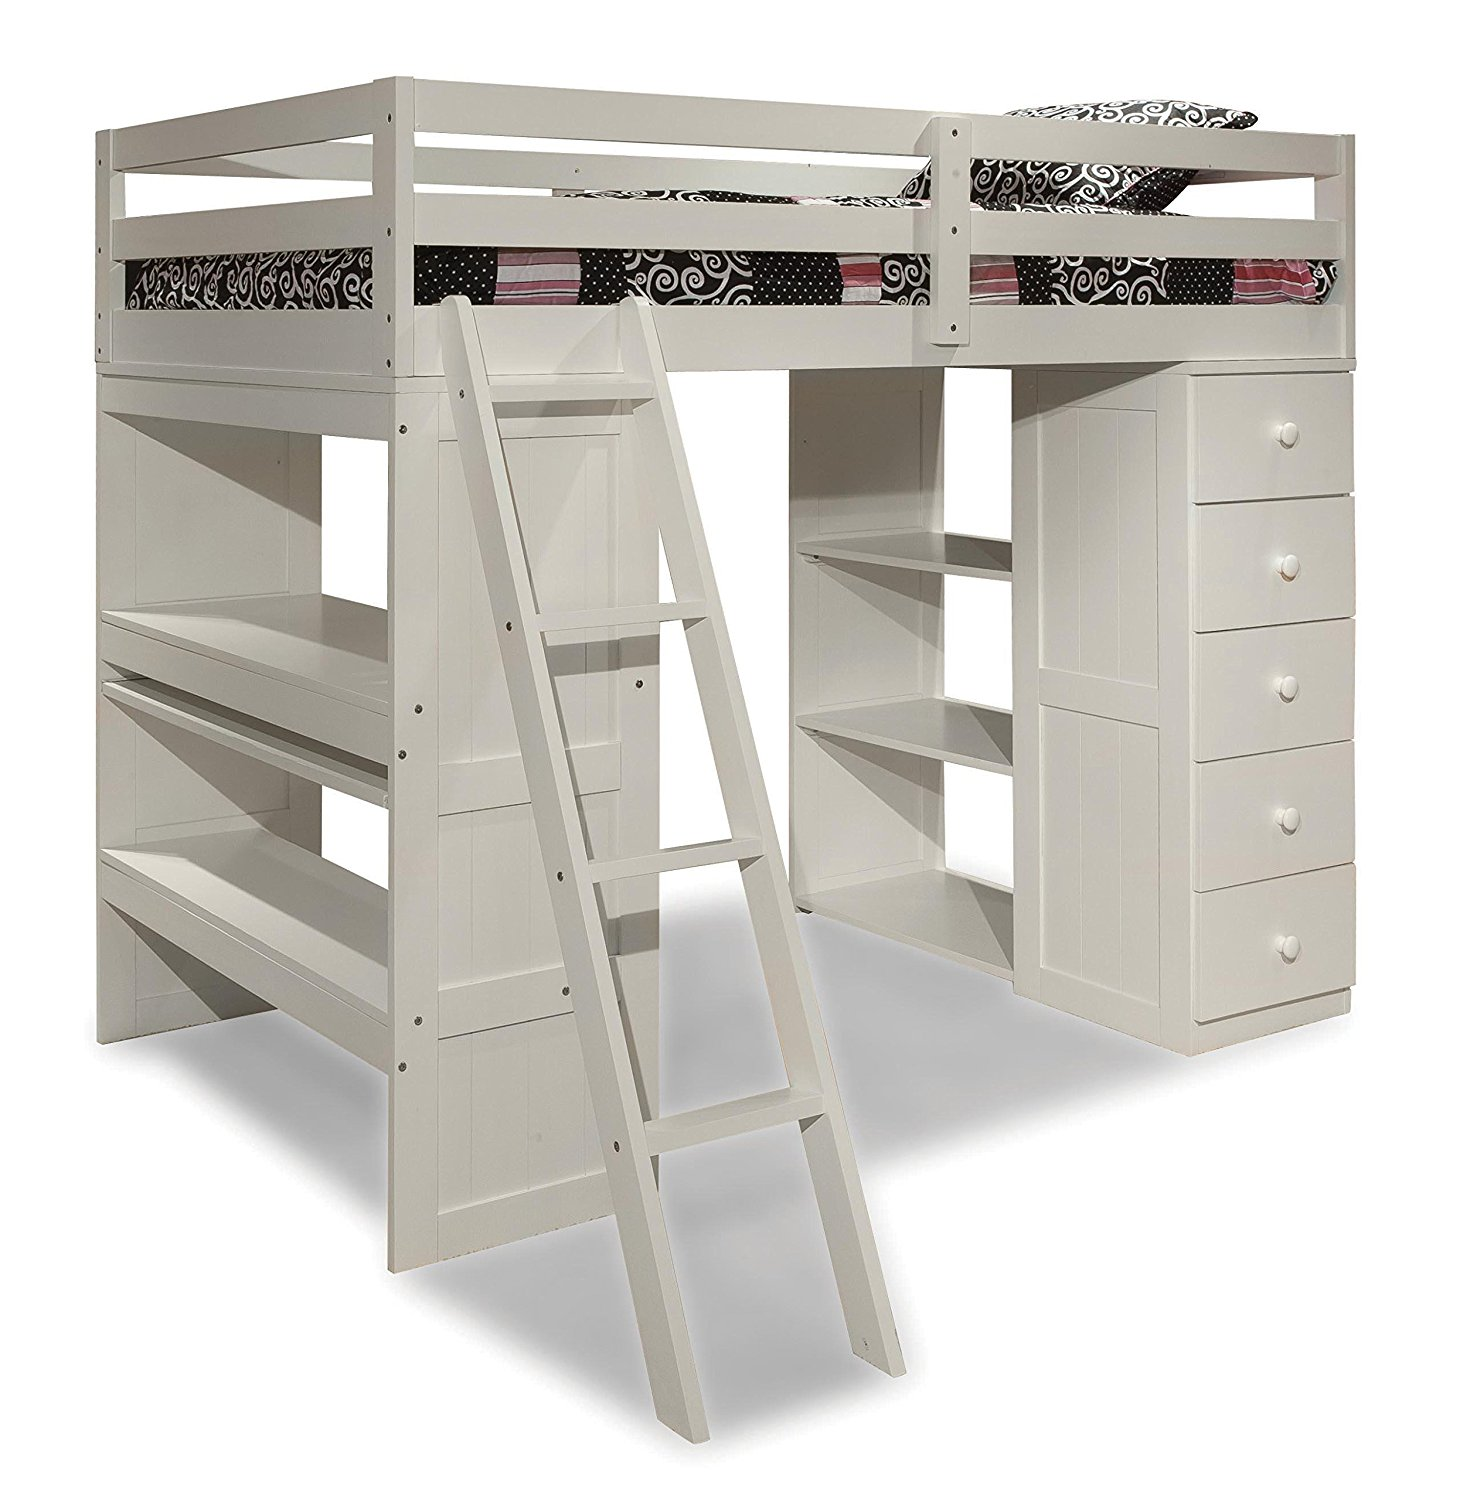 Sensational Canwood Loft Bed | Surprising Canwood Whistler Storage Loft Bed with Desk Bundle White